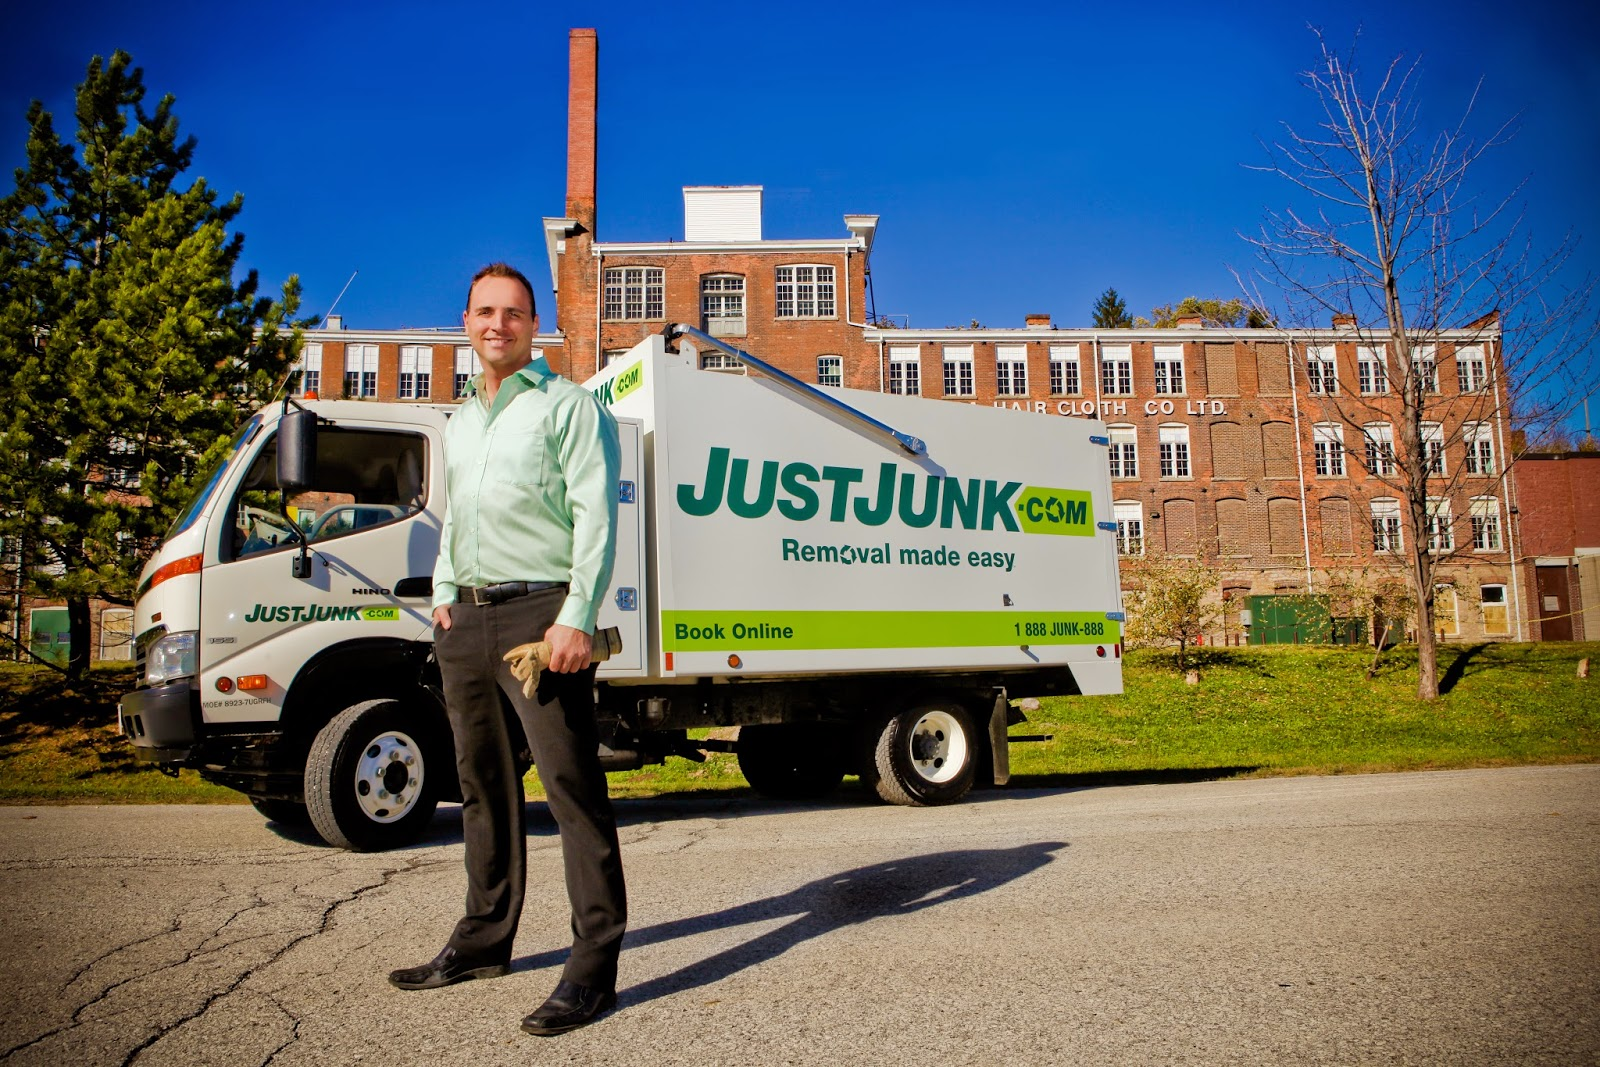 JUST JUNK CEO Mike Thorne